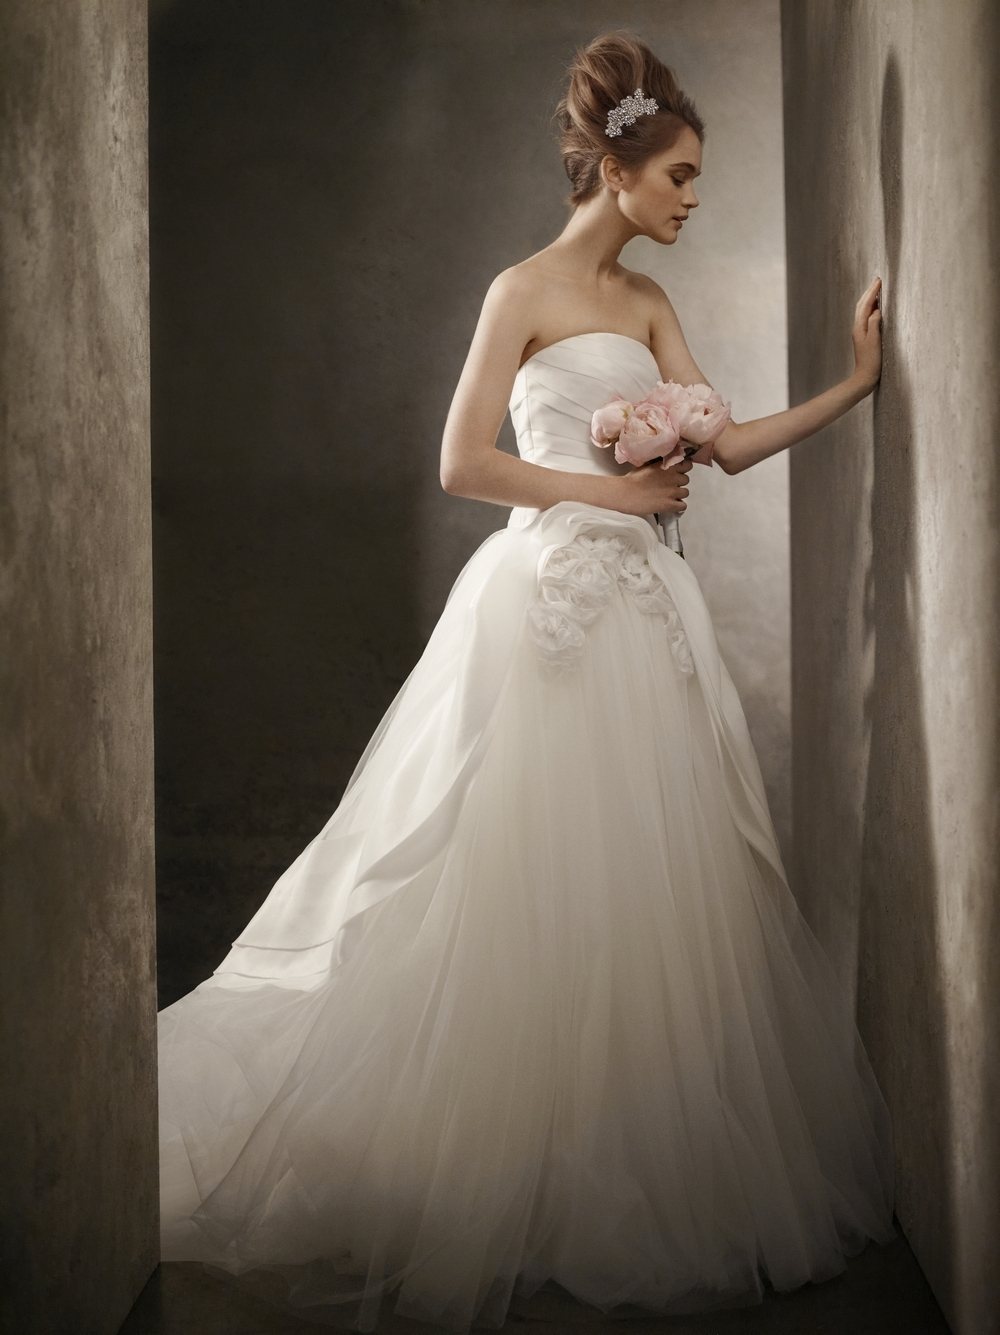 2011-wedding-dresses-vera-wang-white-vw351026-white-strapless-ball-gown-floral-applique.full